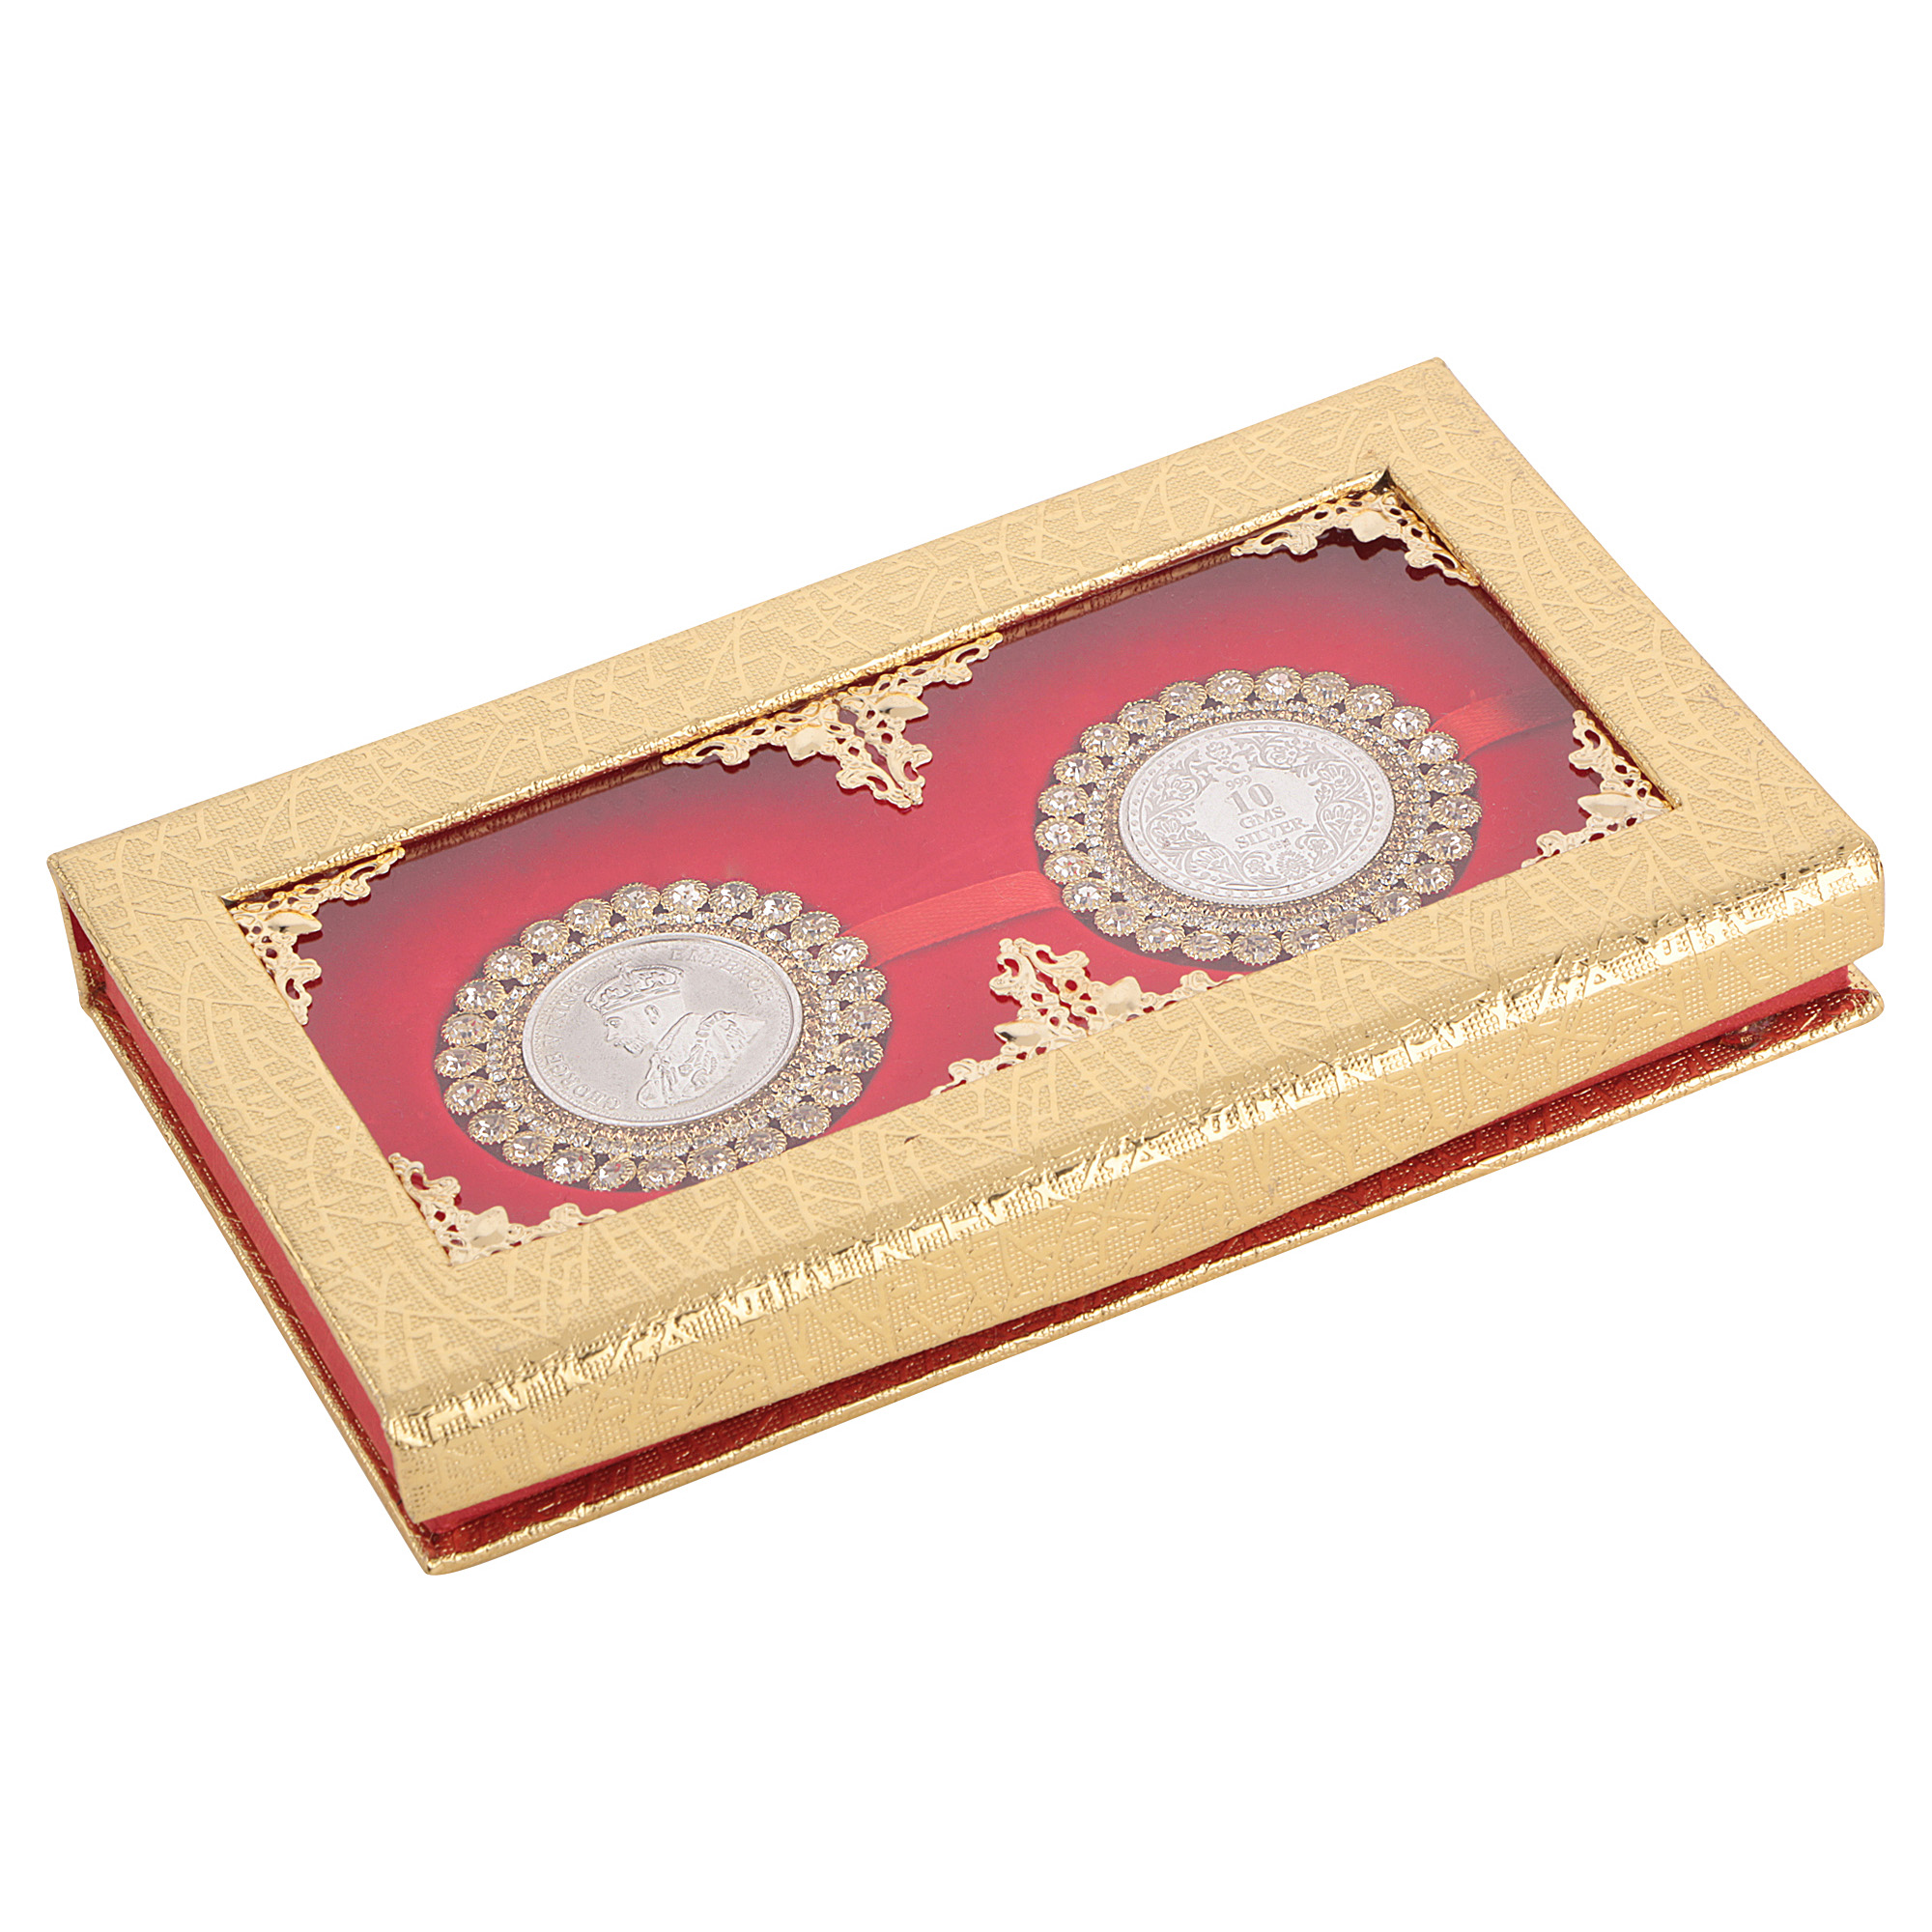 Silver Coin 10gm x2 in Red Golden Ring Packing by Osasbazaar Main